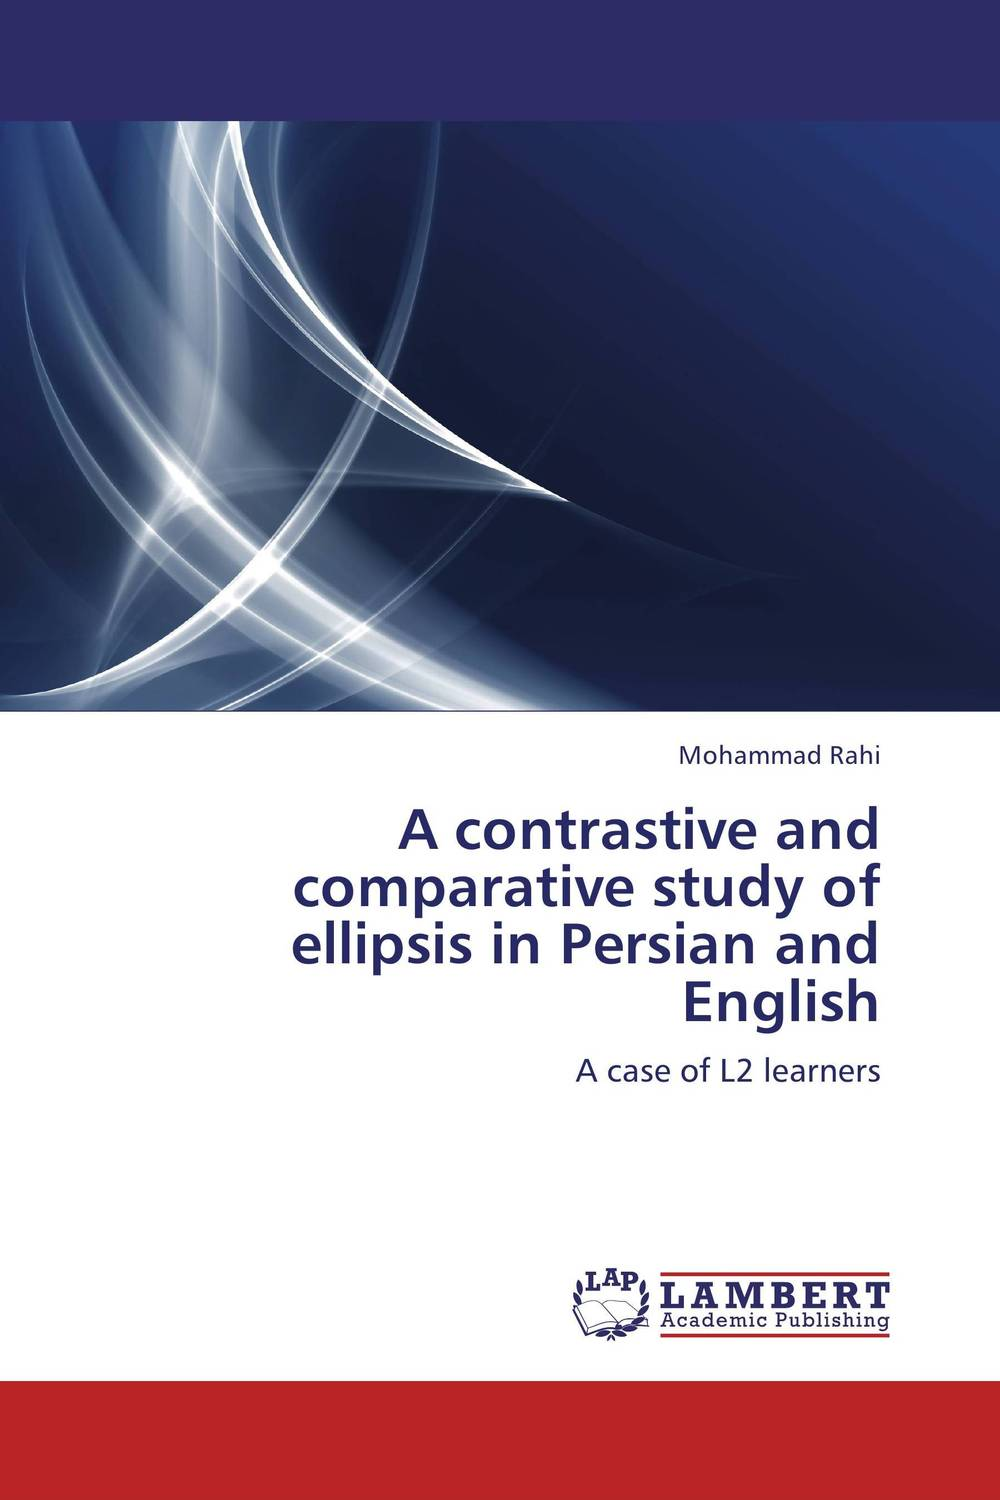 A contrastive and comparative study of ellipsis in Persian and English the comedy of errors